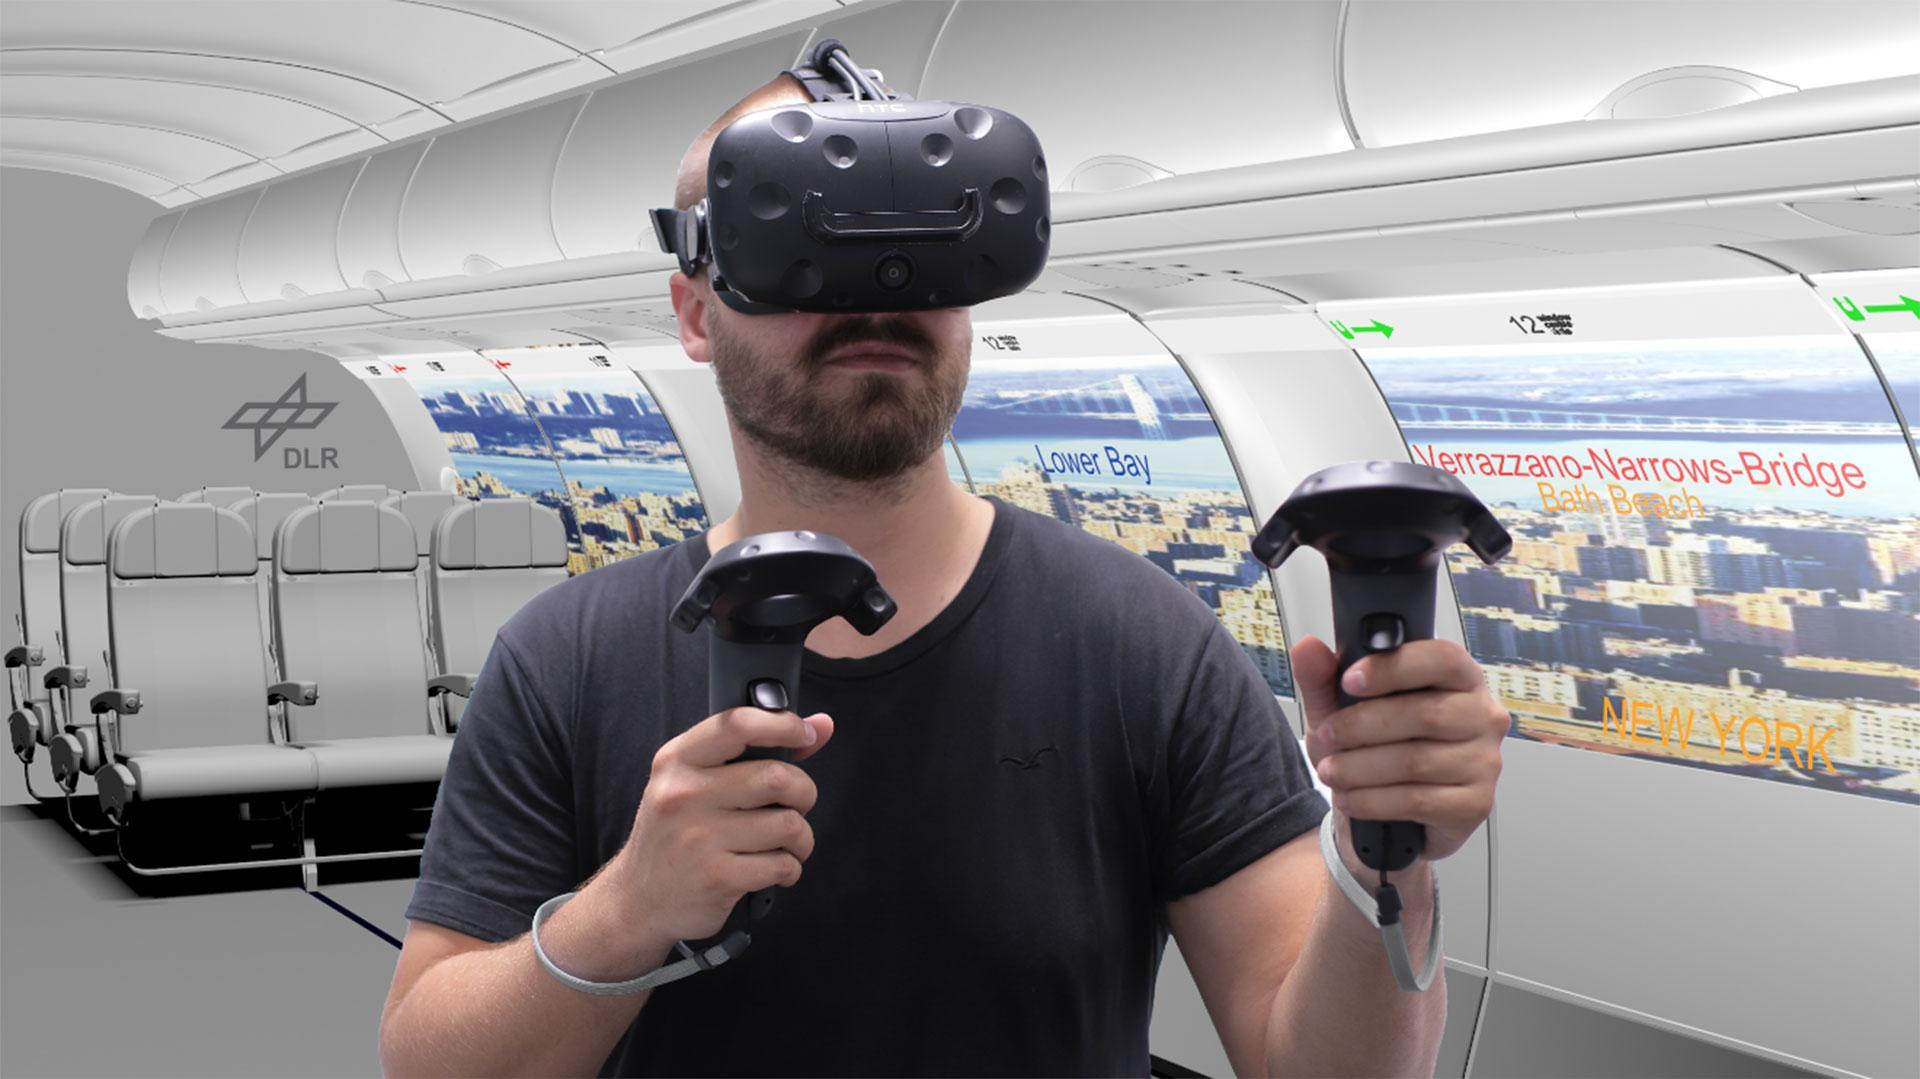 Using virtual reality to design new aircraft